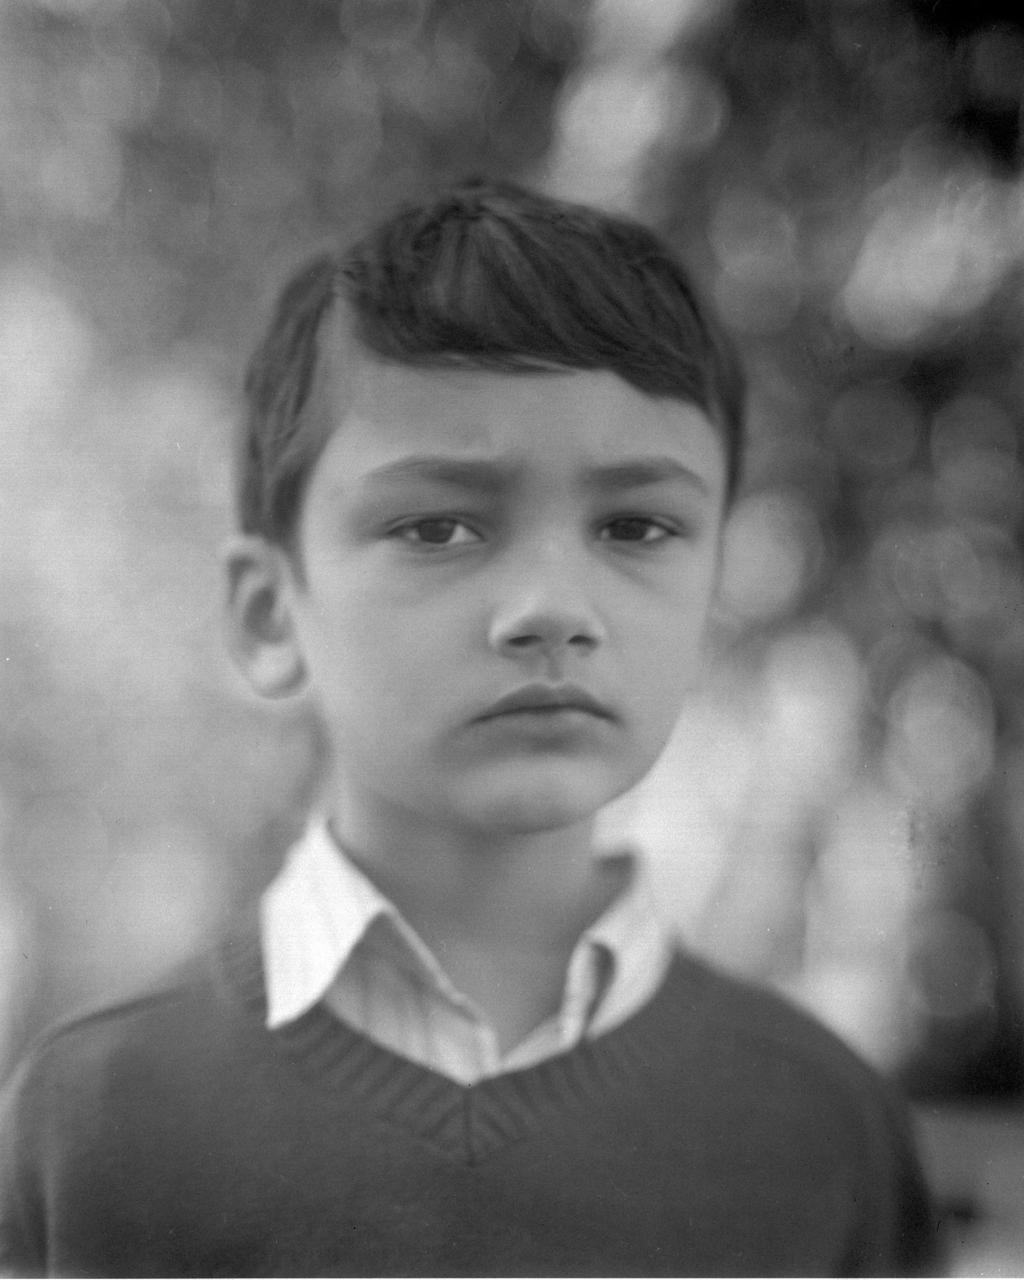 This is an overexposed image of Xander shot on tri-x 320 using my 4x5. I sent this out to be processed and scanned the negative with my Epson V700.   One of the draw backs to my 4x5 is that the lens has no shutter, so all exposures are manual. Actually, I think I should rephrase that and say the draw back is that I'm not experienced enough with the lens/camera combo to know what I'm doing…yet :)   This was taken in the middle of the afternoon under the shade of many trees. At the moment I have a box of tri-x 320 and so I set the aperture to f/11 and metered for those setting. Of course the suggestion was about 1/36 which is not possible without a shutter. At the time I had completely forgotten about pushing/pulling film so I just used my hand and covered/uncovered the lens as quickly as I could and sent it out to be processed fully expecting total failure. Results? You guessed it, way over exposed.   I still think it's lovely. It has that antique glow to it doesn't it? Most importantly I knew what I was doing wrong and I know how to fix it. I think a slower speed film is in order as well as testing out some filters. While I'm waiting for my order of t-max 100 to come in I'm going to try pulling the 320. *fingers crossed*